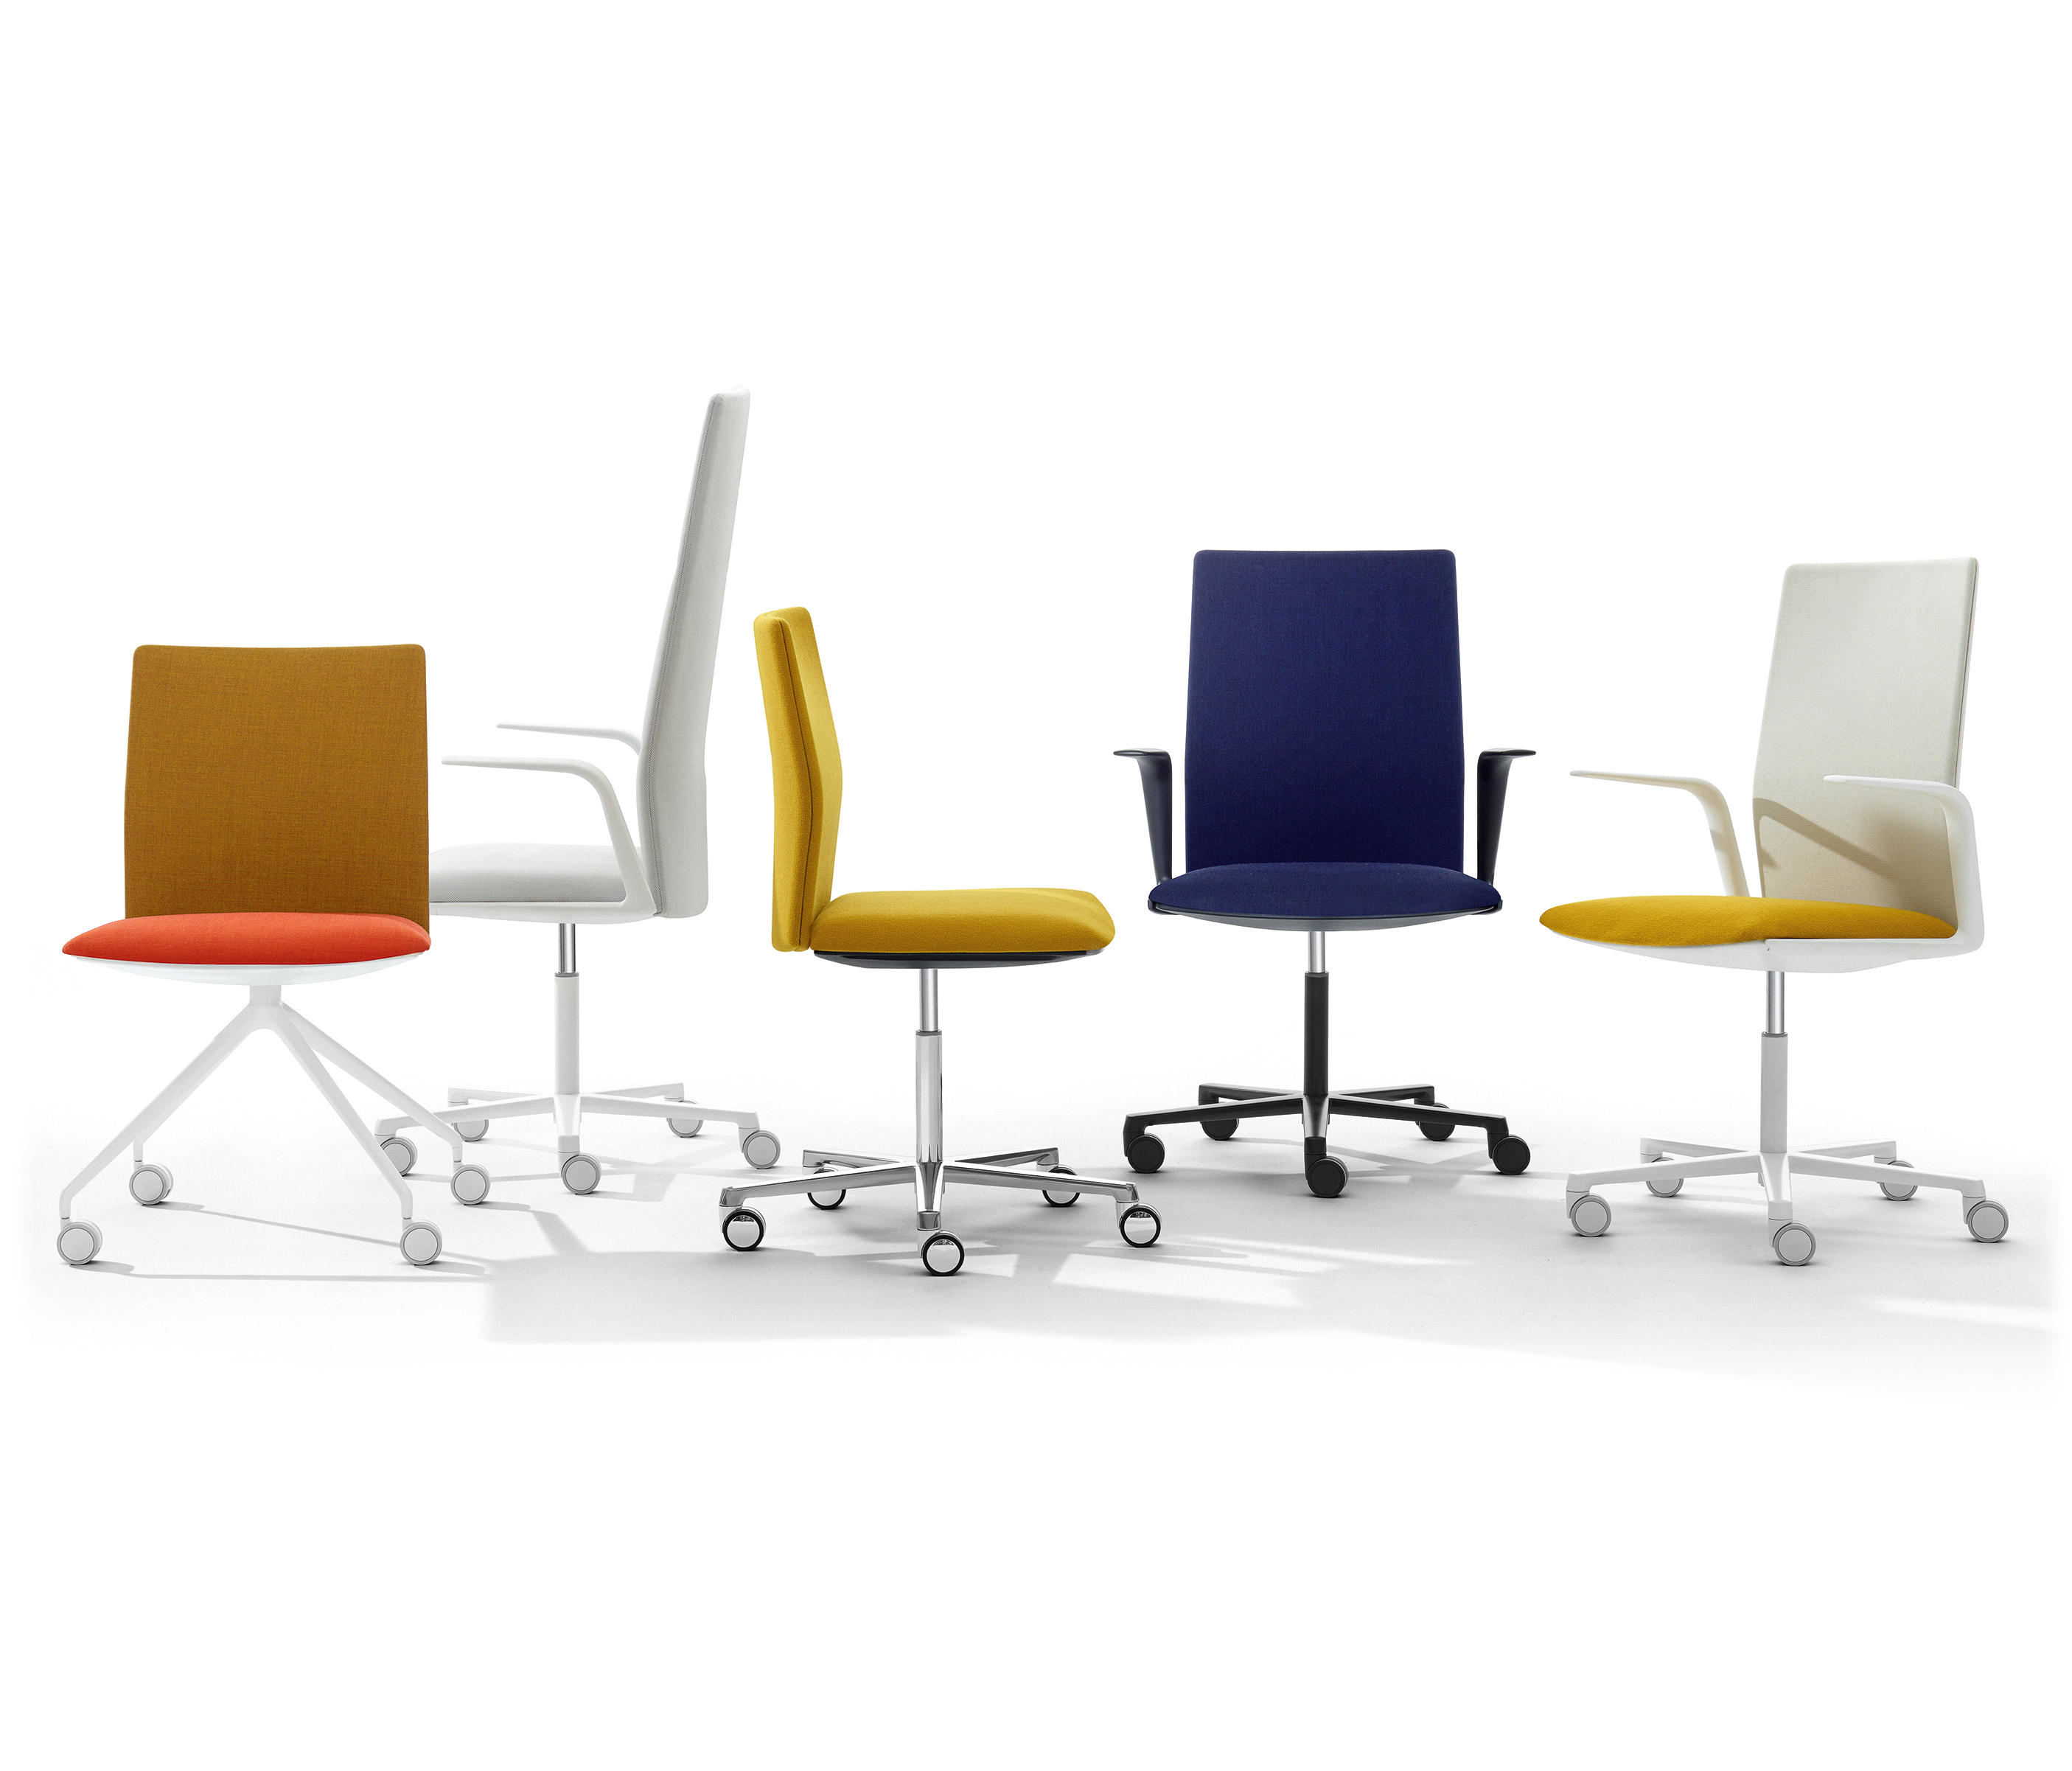 KINESIT Task chairs from Arper